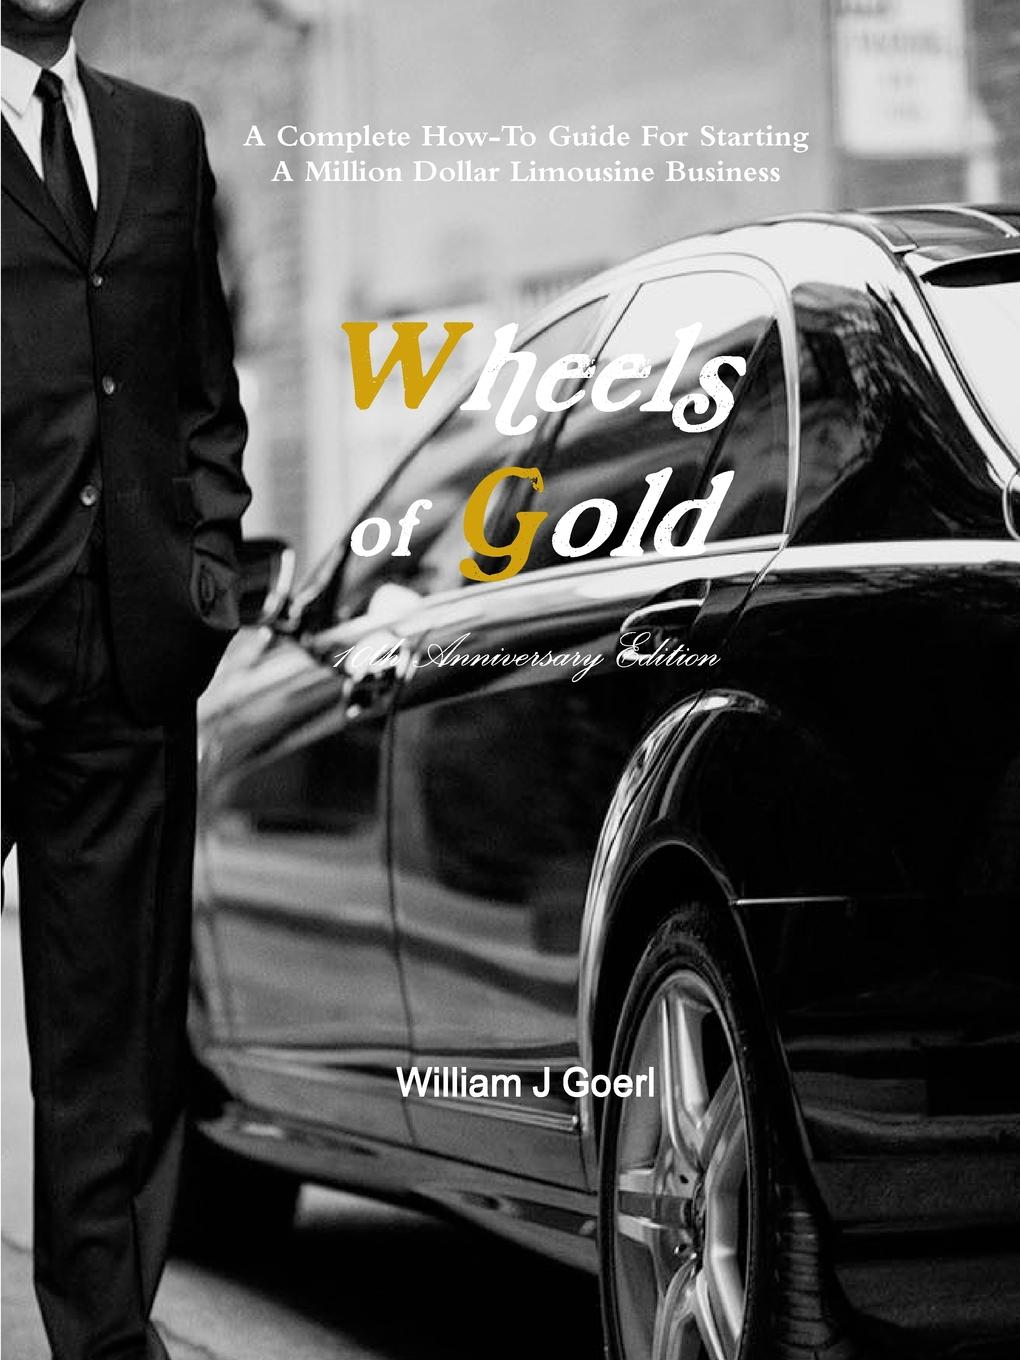 William Goerl Wheels of Gold - Limo Book